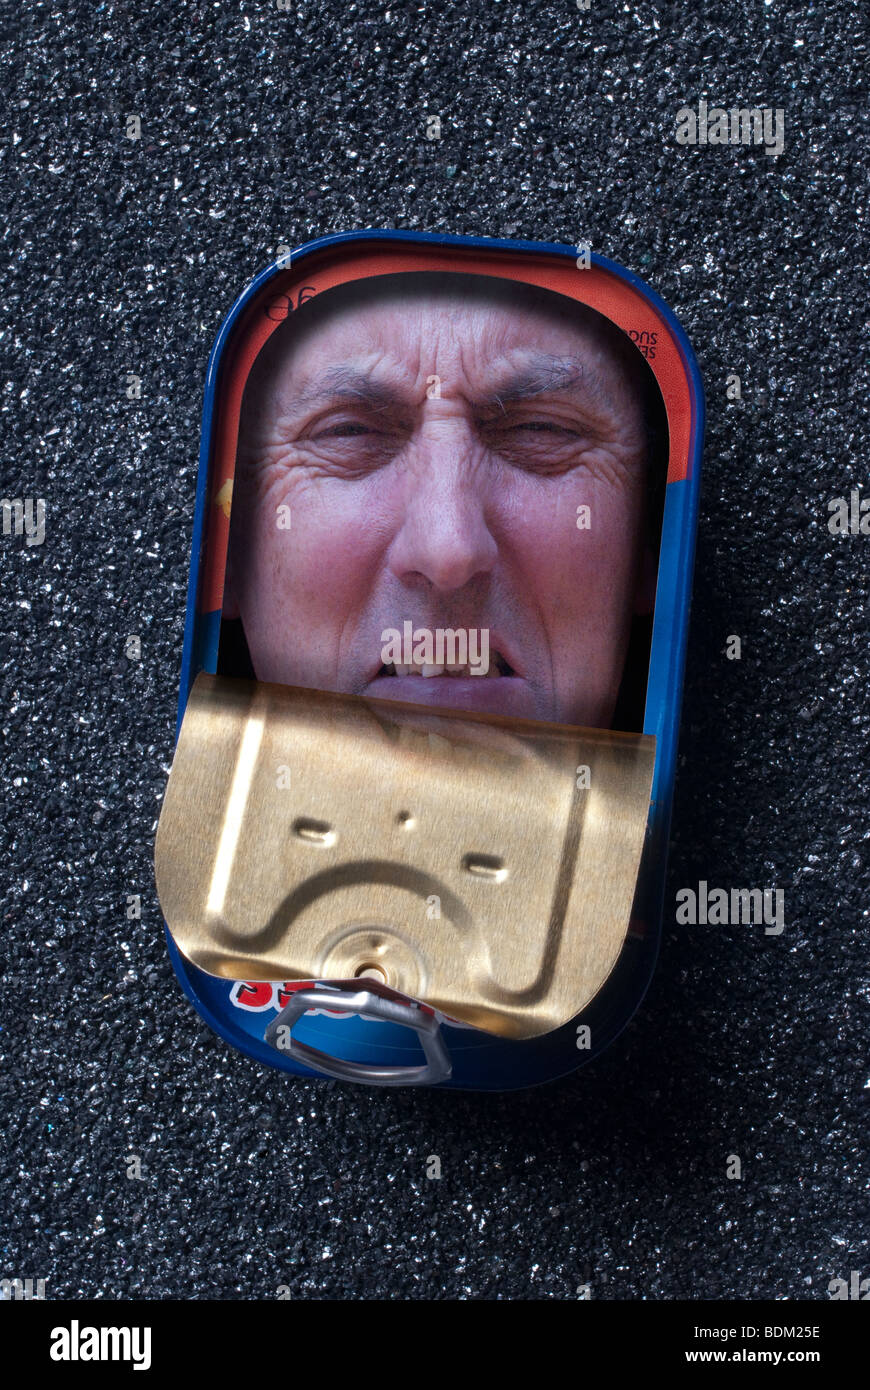 Stress and pain and trapped like a sardine - Stock Image